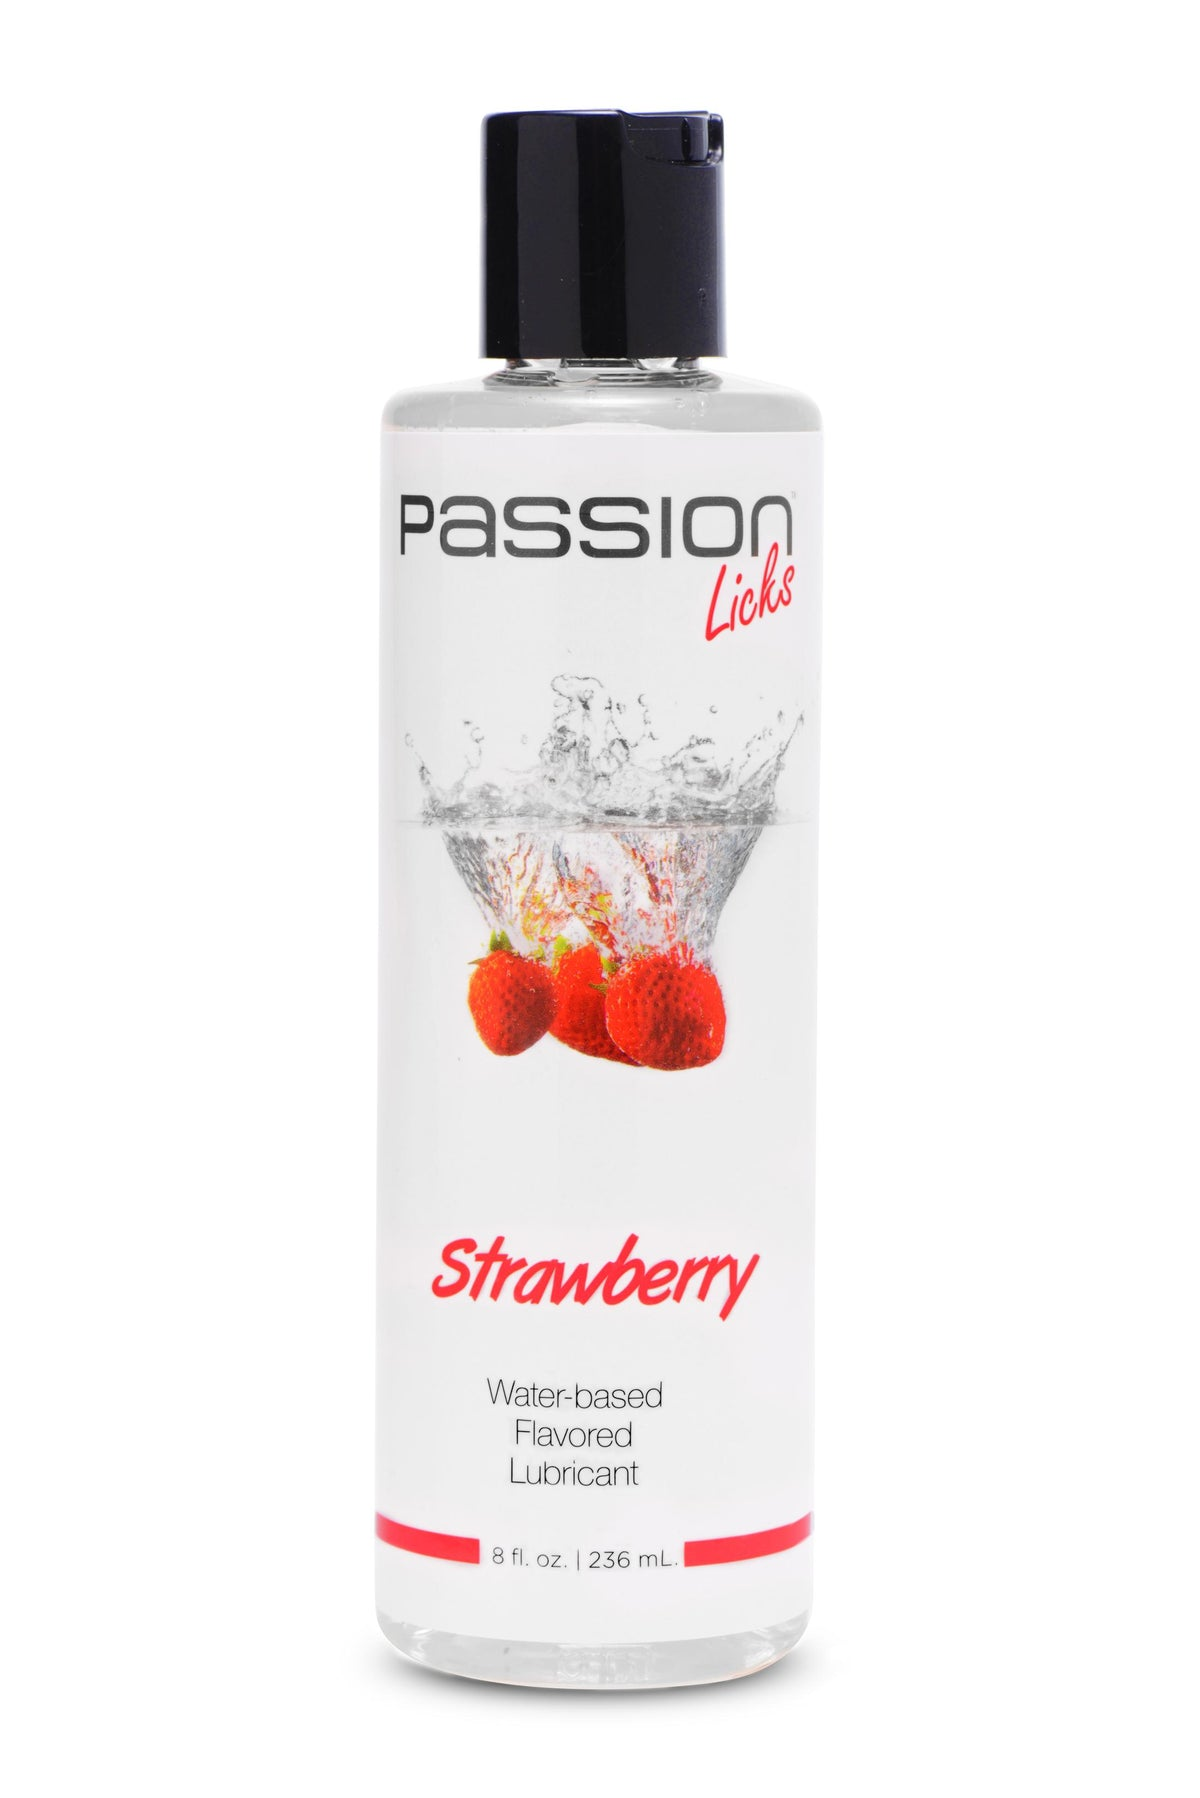 Passion Licks Strawberry Water Based Flavored Lubricant - 8 Fl Oz 236 ml